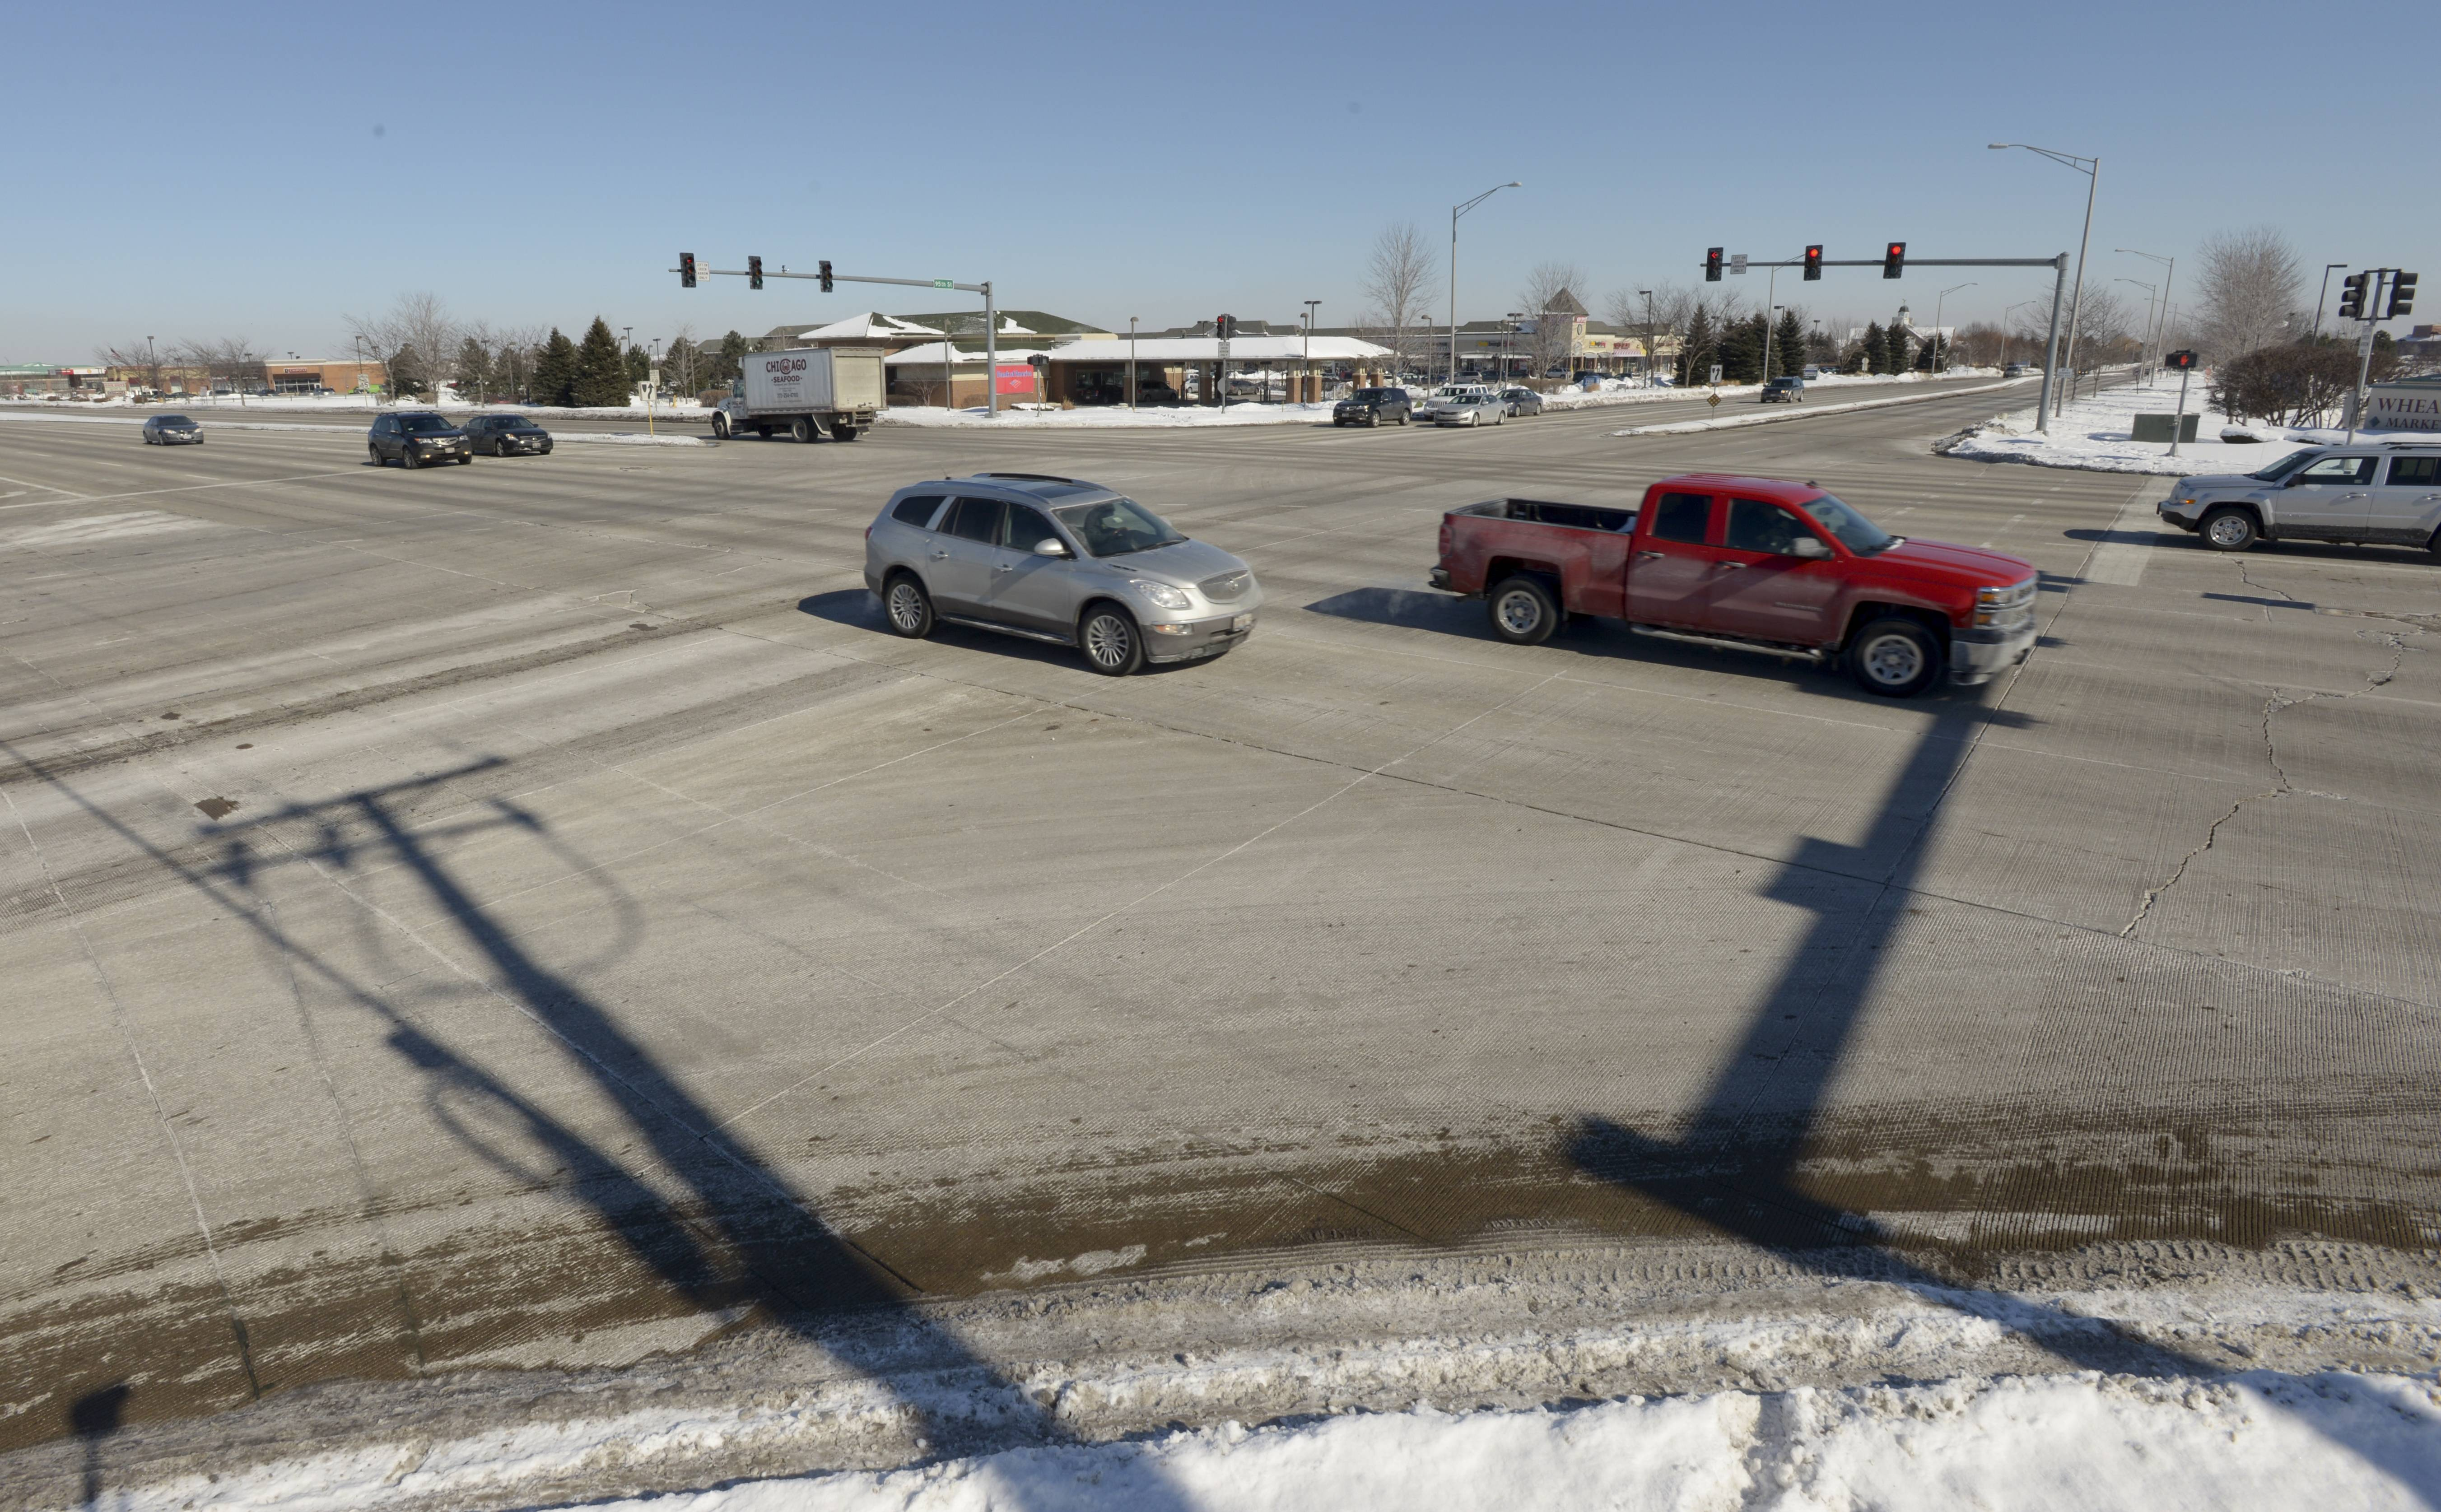 Route 59 intersections top crash list in Naperville